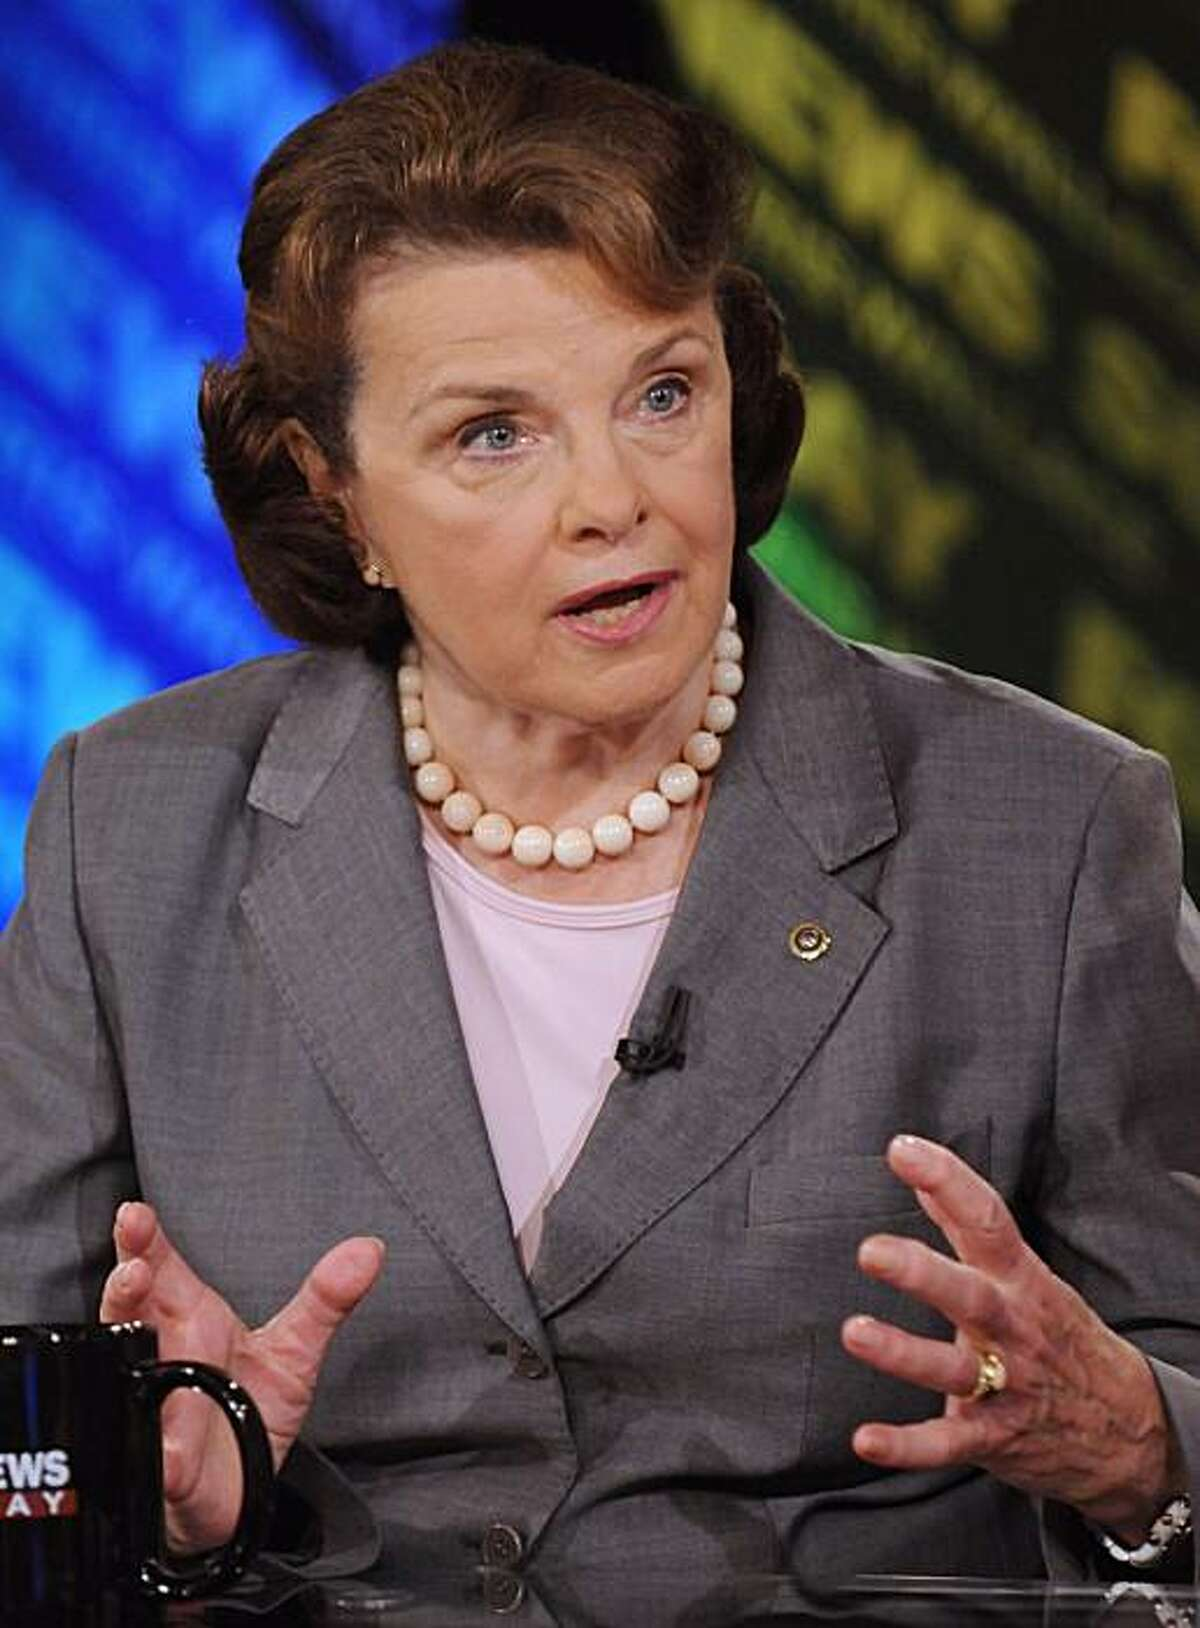 In this photo provided by FOX News, Sen. Dianne Feinstein, D-Calif., appears on